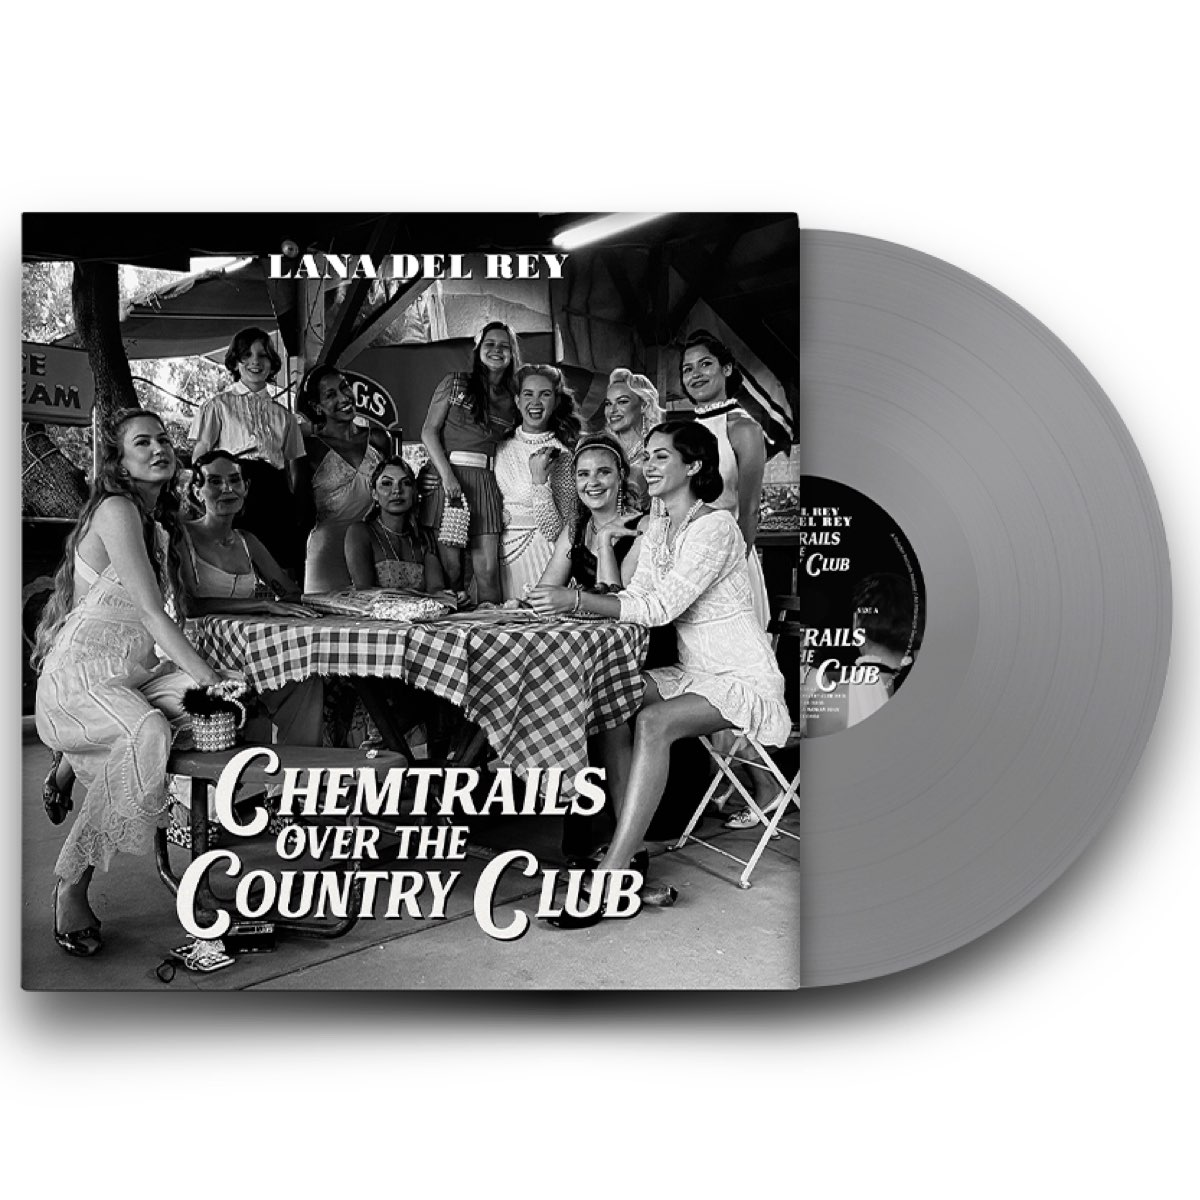 Lana Del Rey - Chemtrails Over the Country Club [Limited Exclusive Edition - Grey Vinyl]